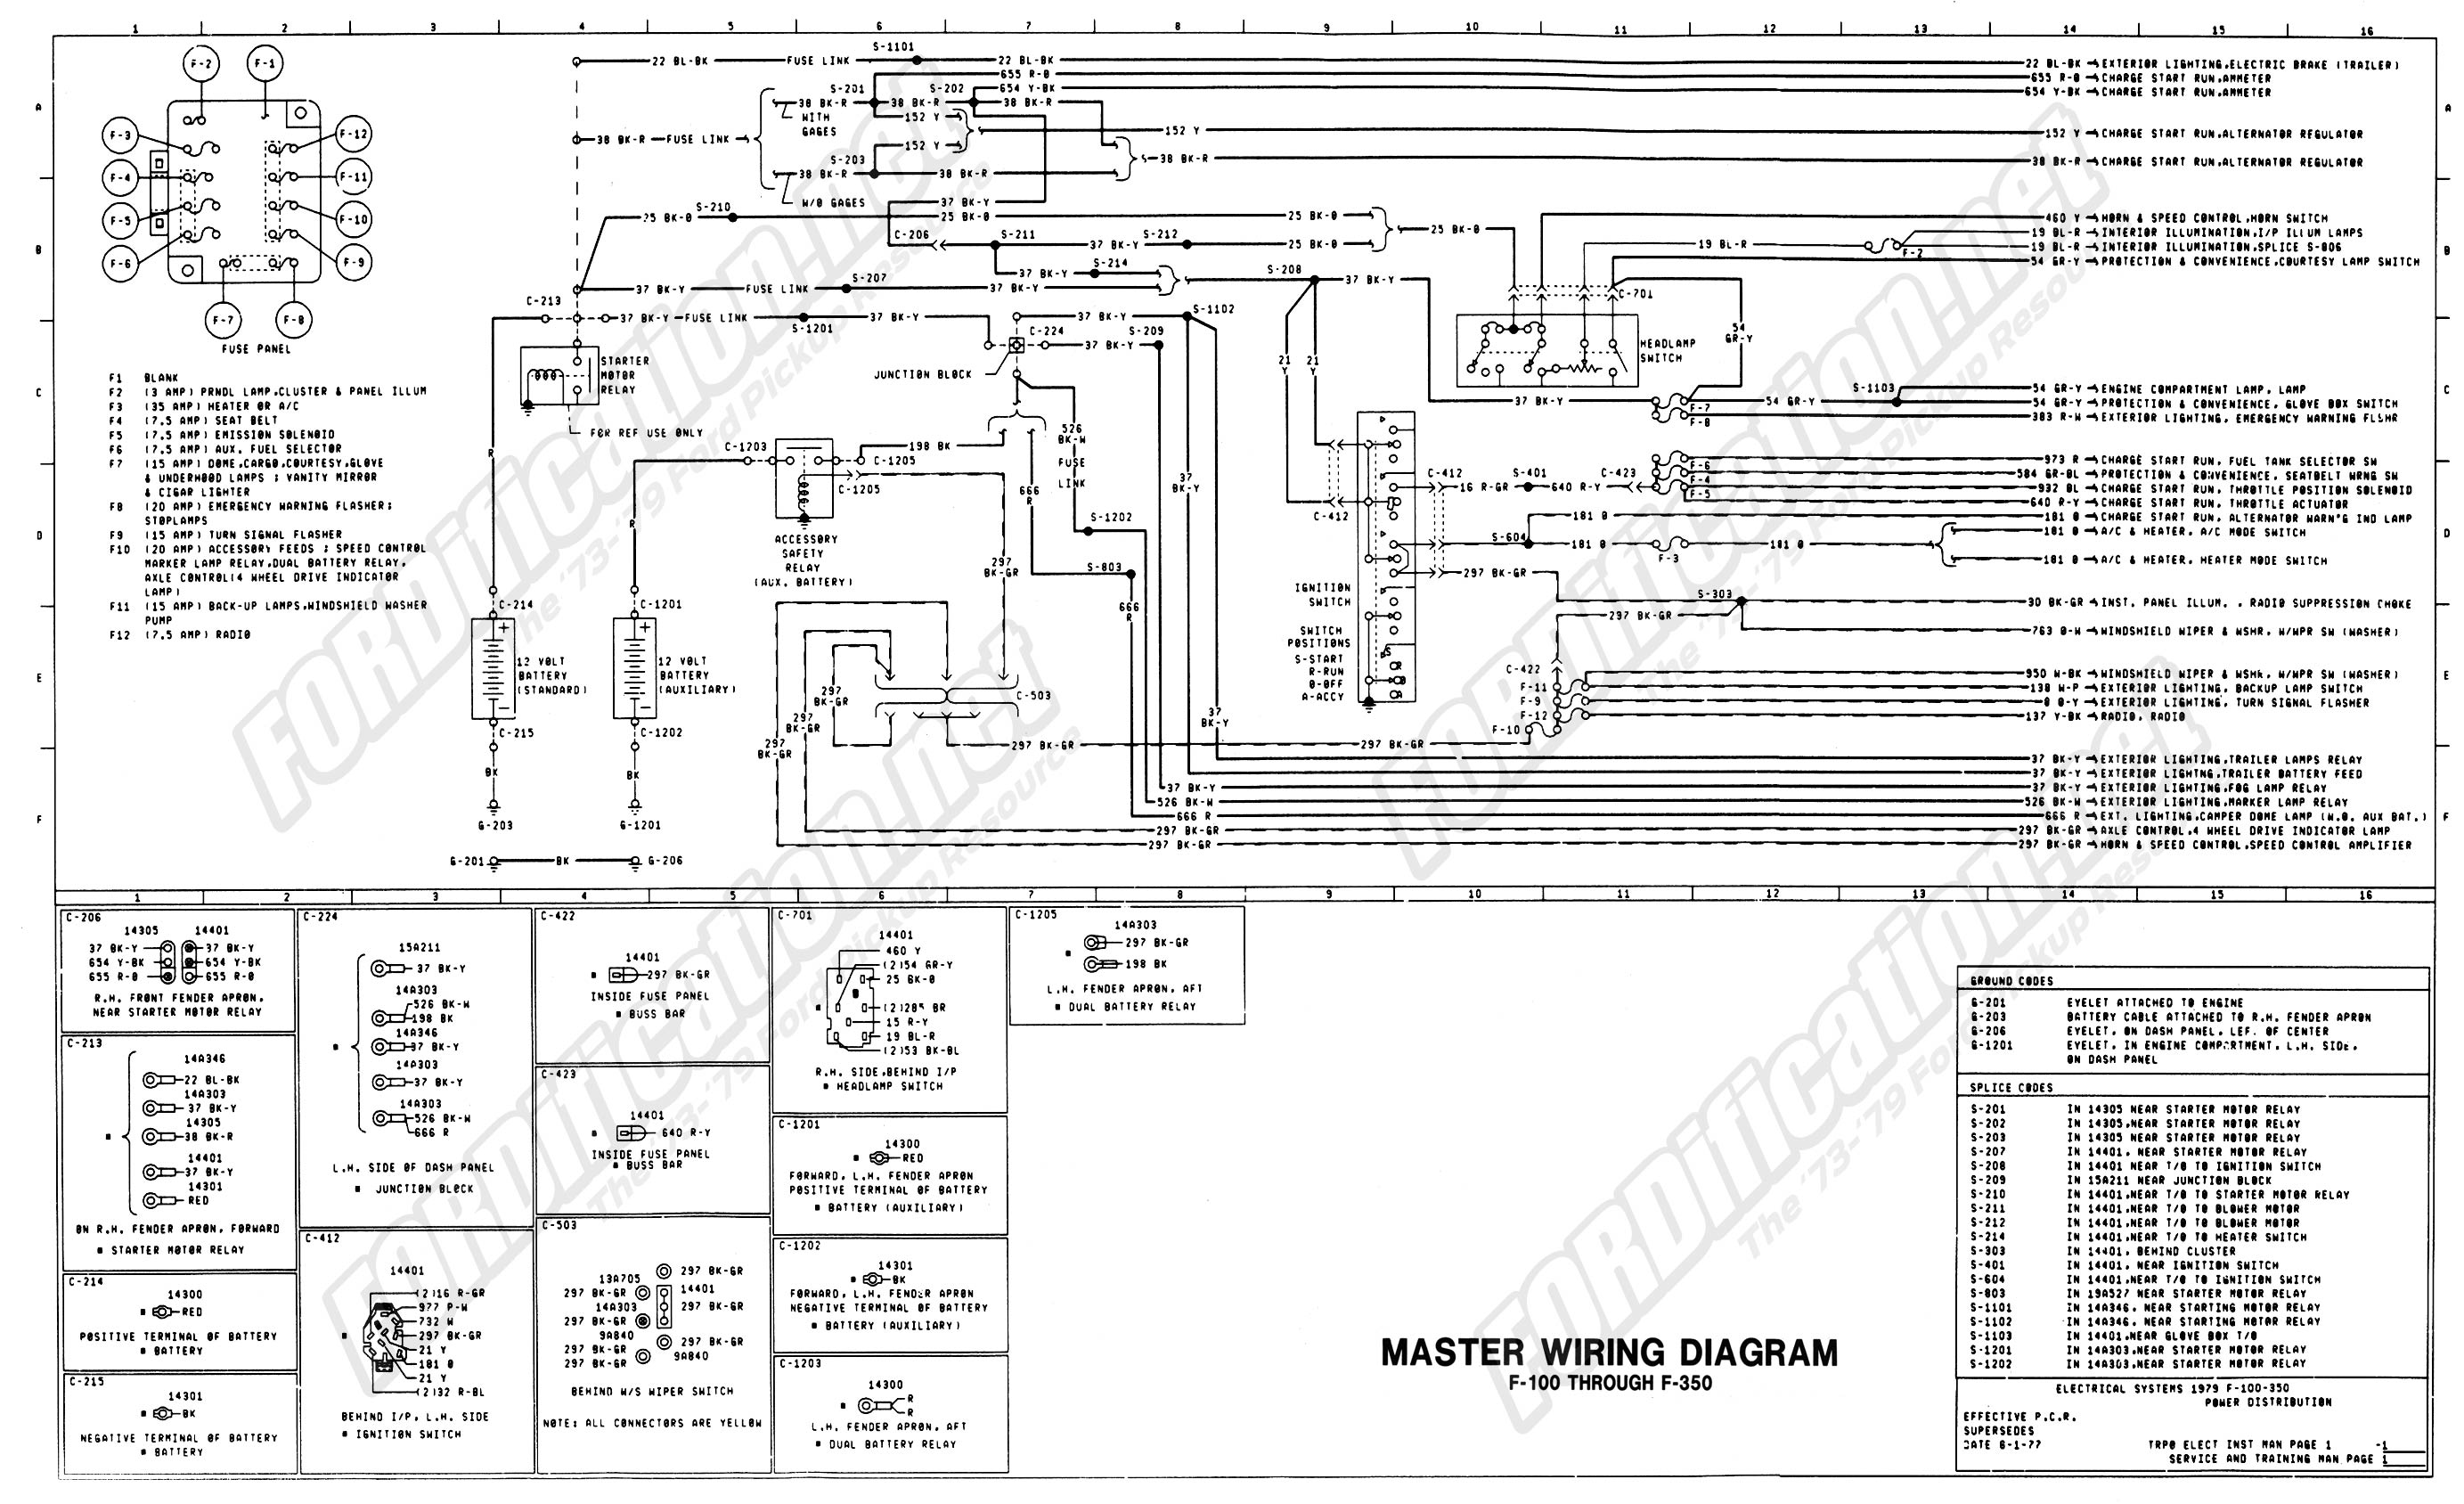 1979 suzuki lj80 wiring diagram schematic diagram rh 168 3dpd co